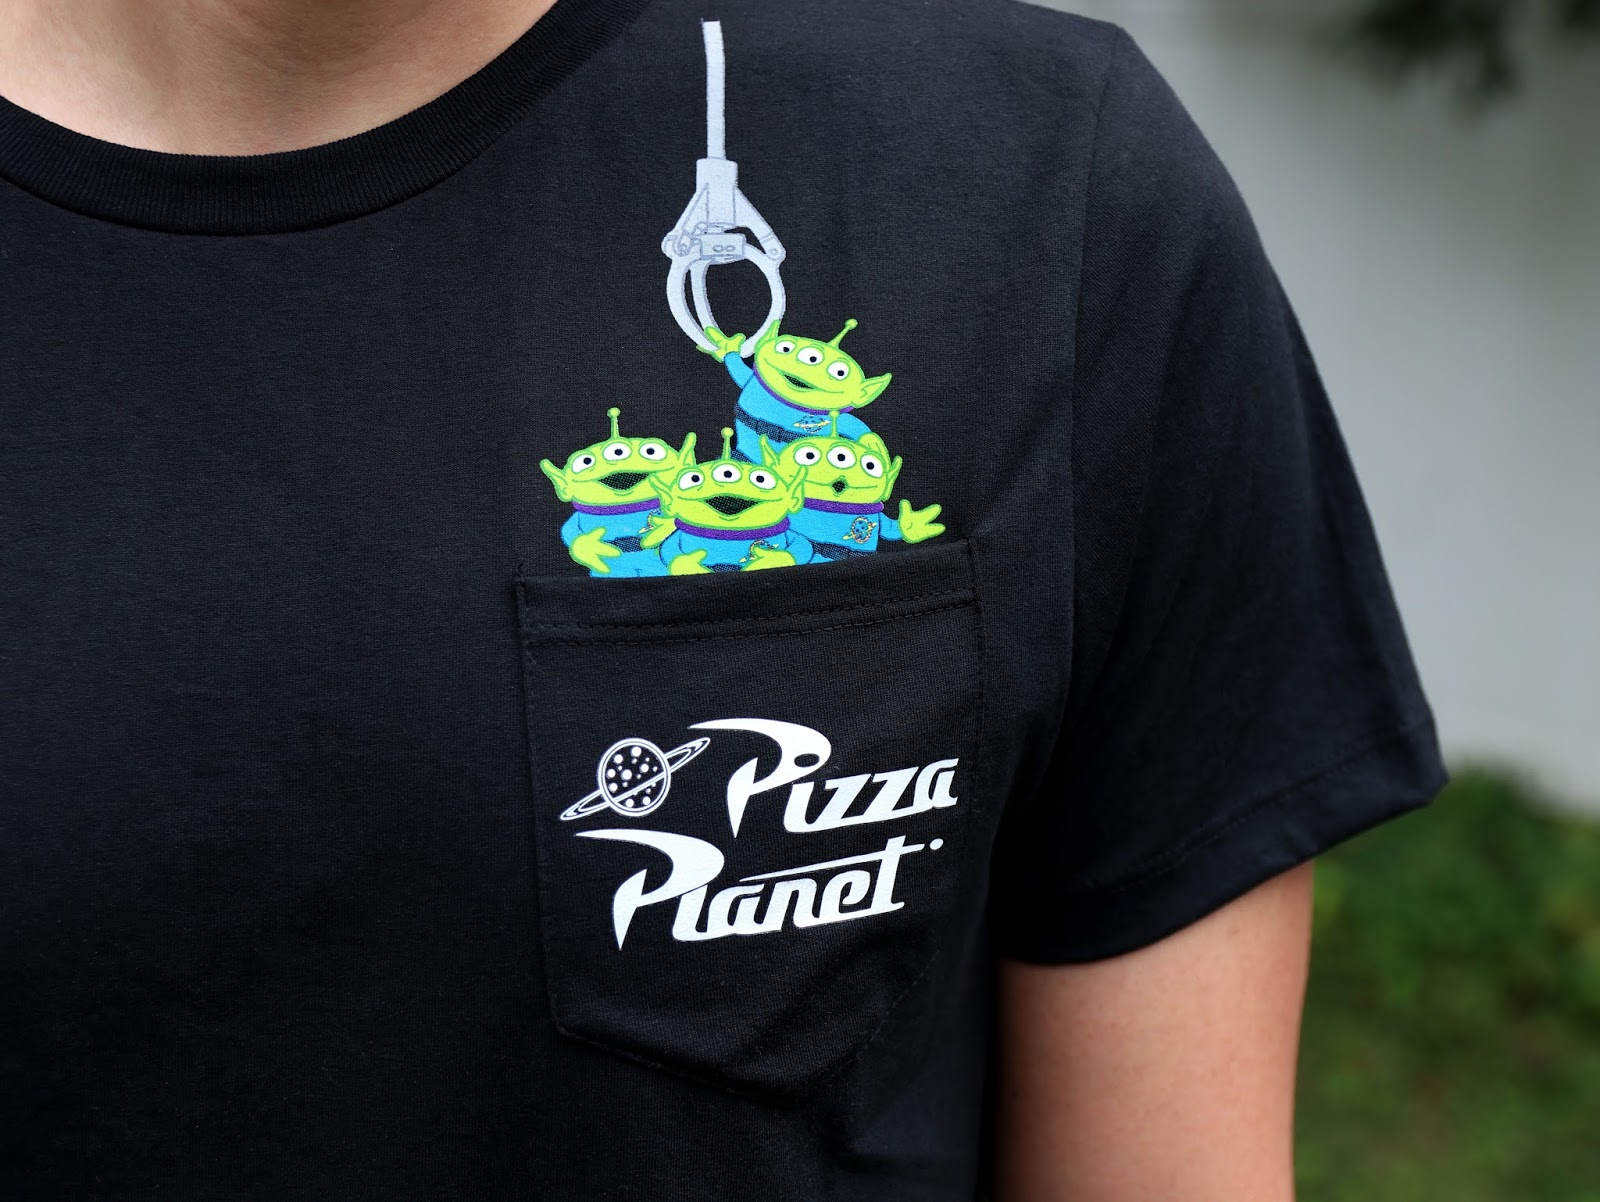 toy story pizza planet alien tee t-shirt pixar